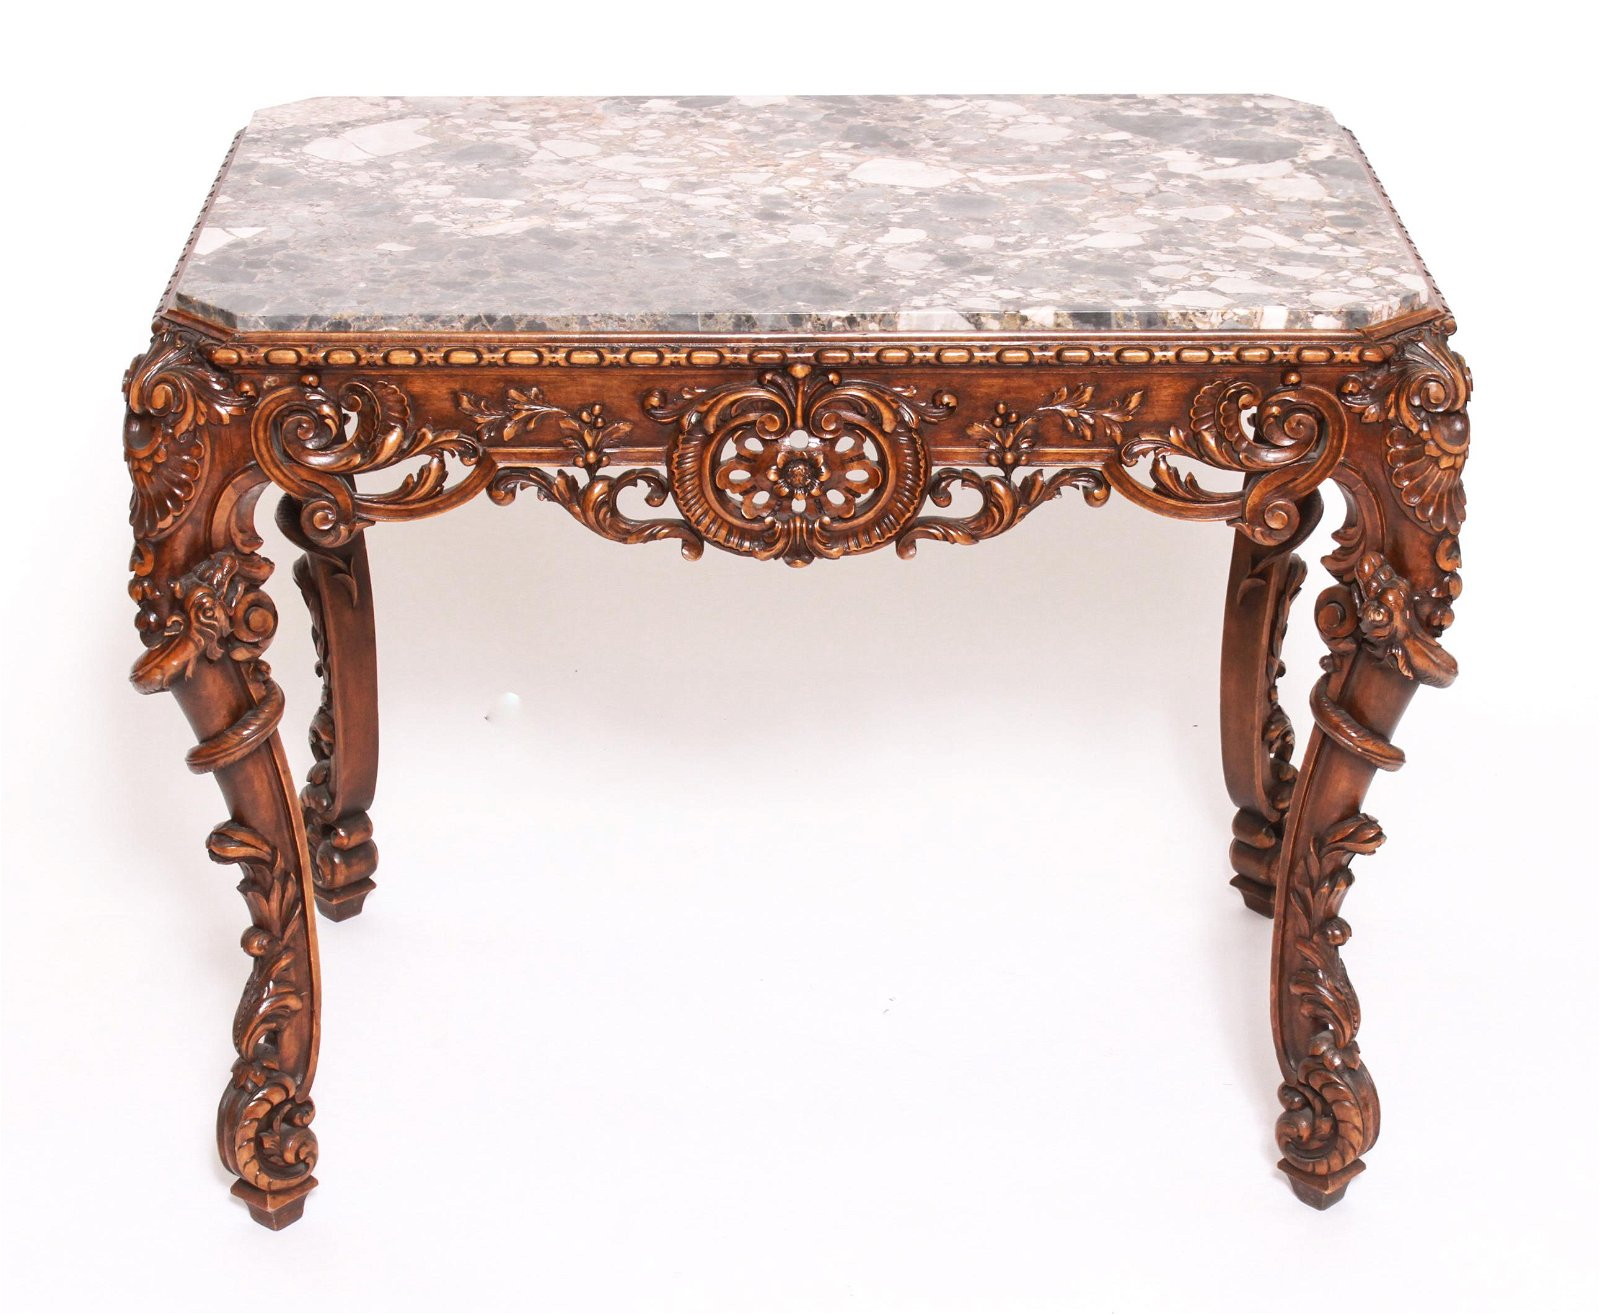 Rosel Ornately Carved Wood & Marble Table